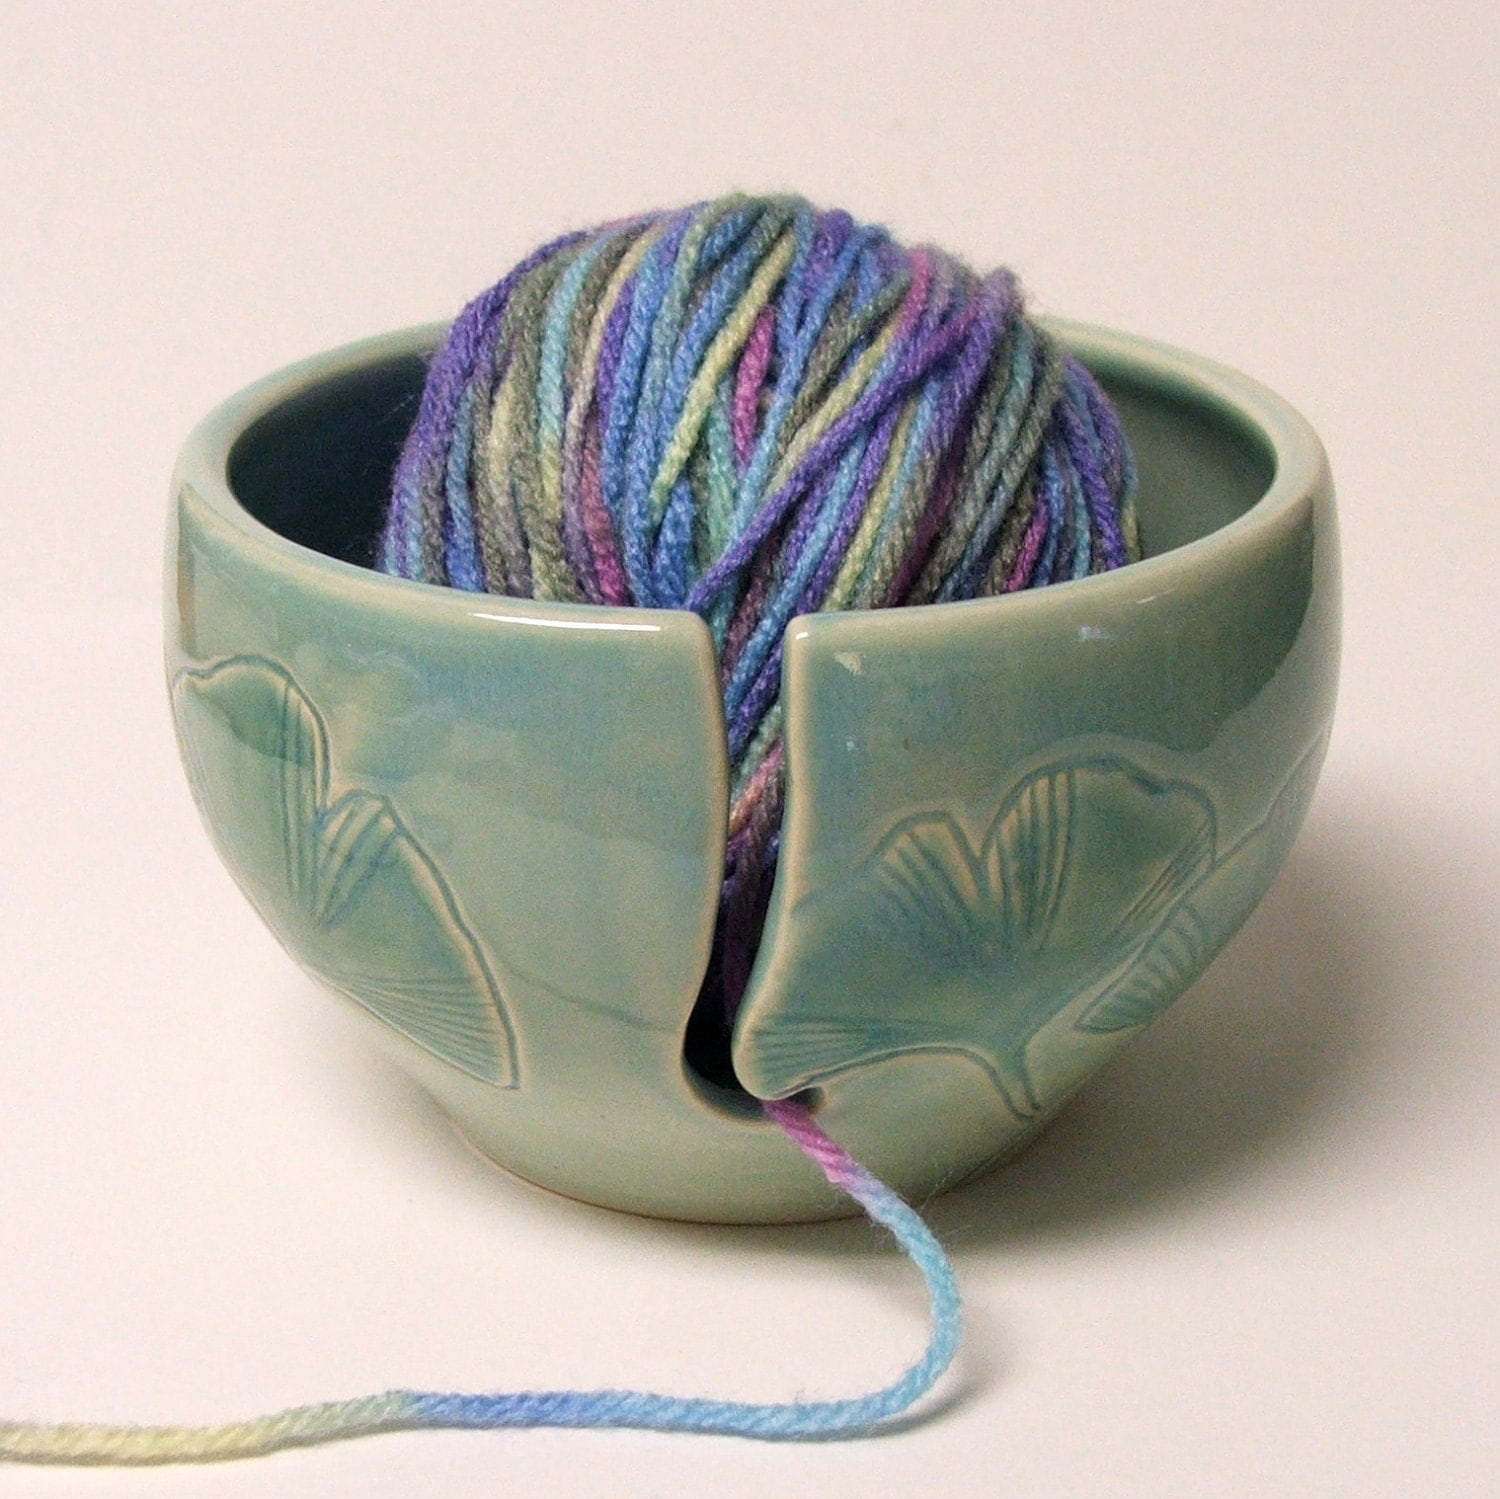 Knitting Yarn Holder : Ceramic yarn bowl knitting holder by potterybysumiko